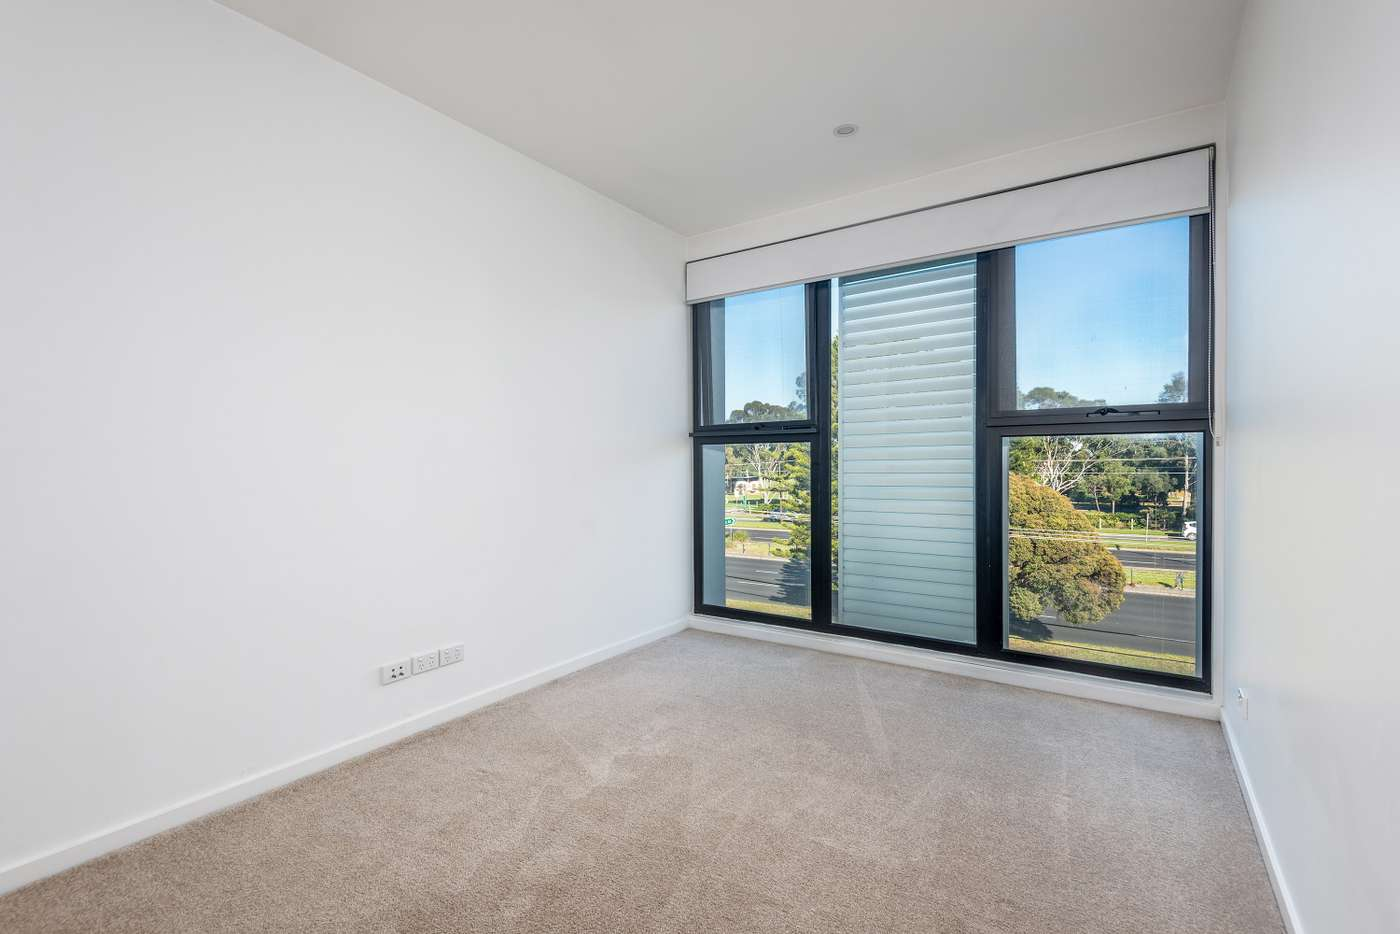 Sixth view of Homely apartment listing, 203/1193-1195 Nepean Highway, Highett VIC 3190